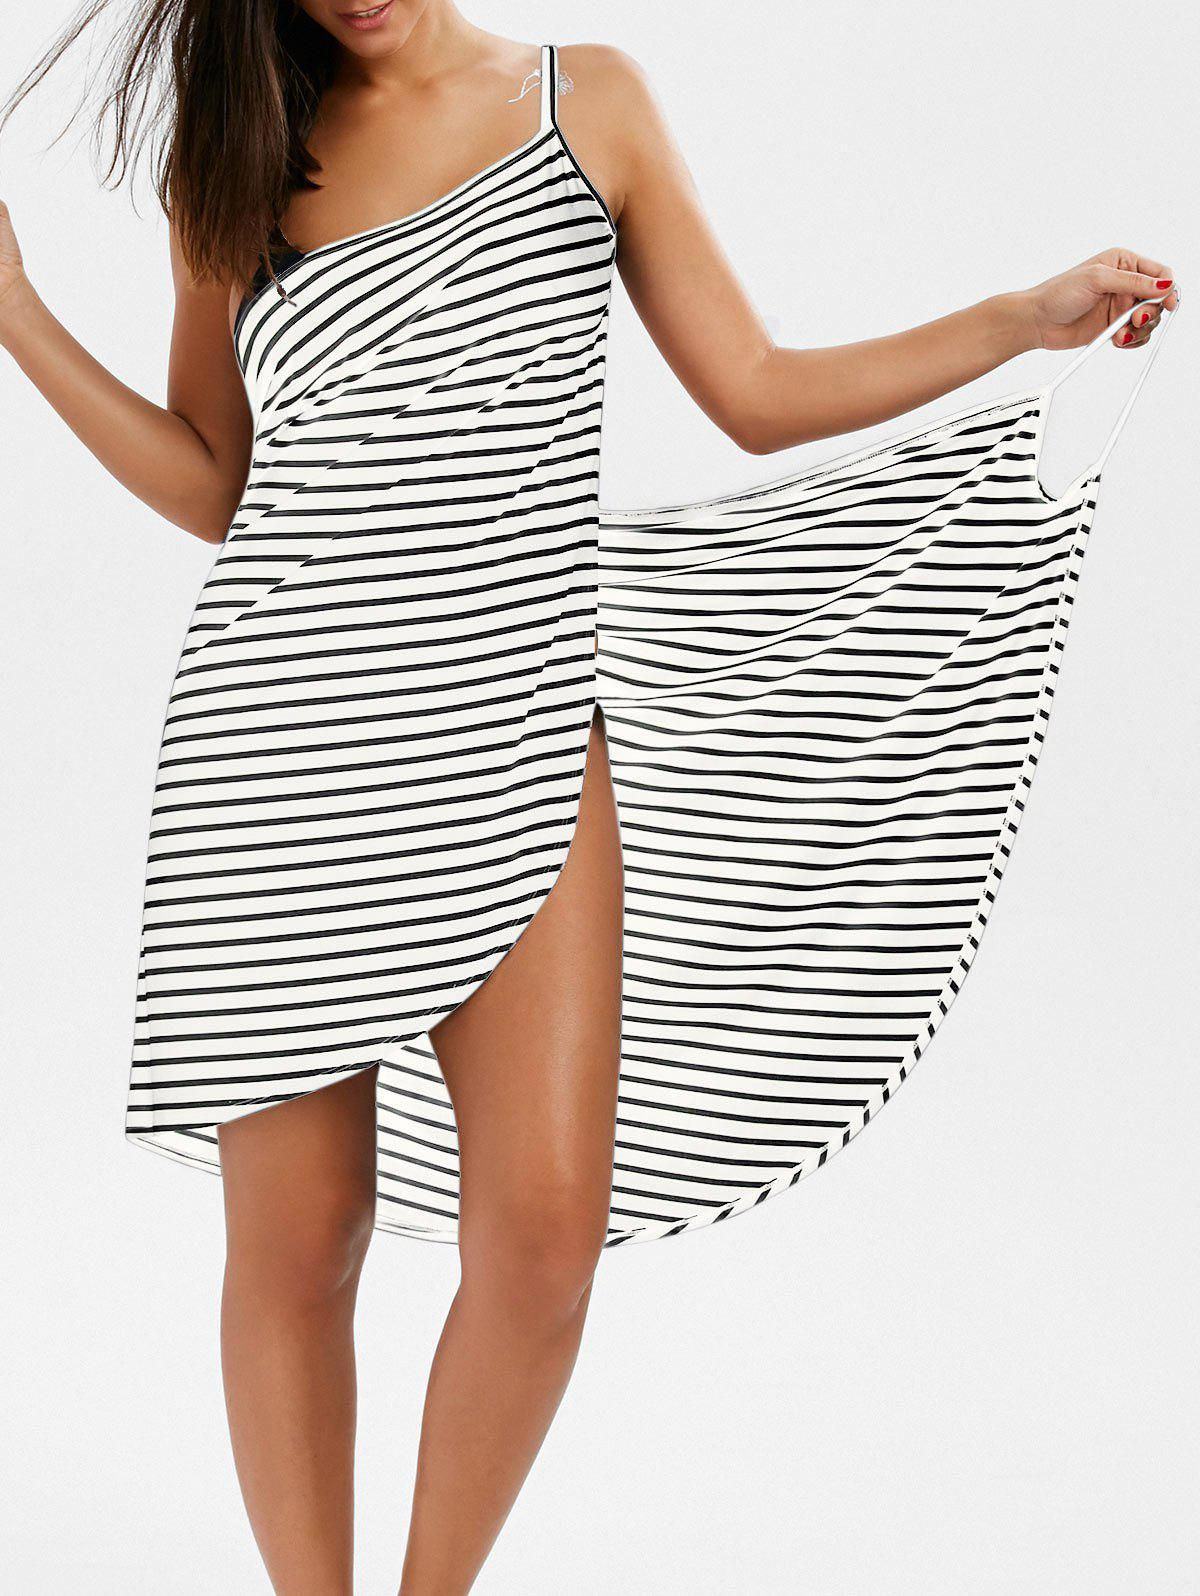 Pinstripe Open Back Cover-ups DressWOMEN<br><br>Size: M; Color: WHITE; Cover-Up Type: Dress; Gender: For Women; Material: Polyester,Spandex; Pattern Type: Striped; Weight: 0.2400kg; Package Contents: 1 x Cover-ups Dress;